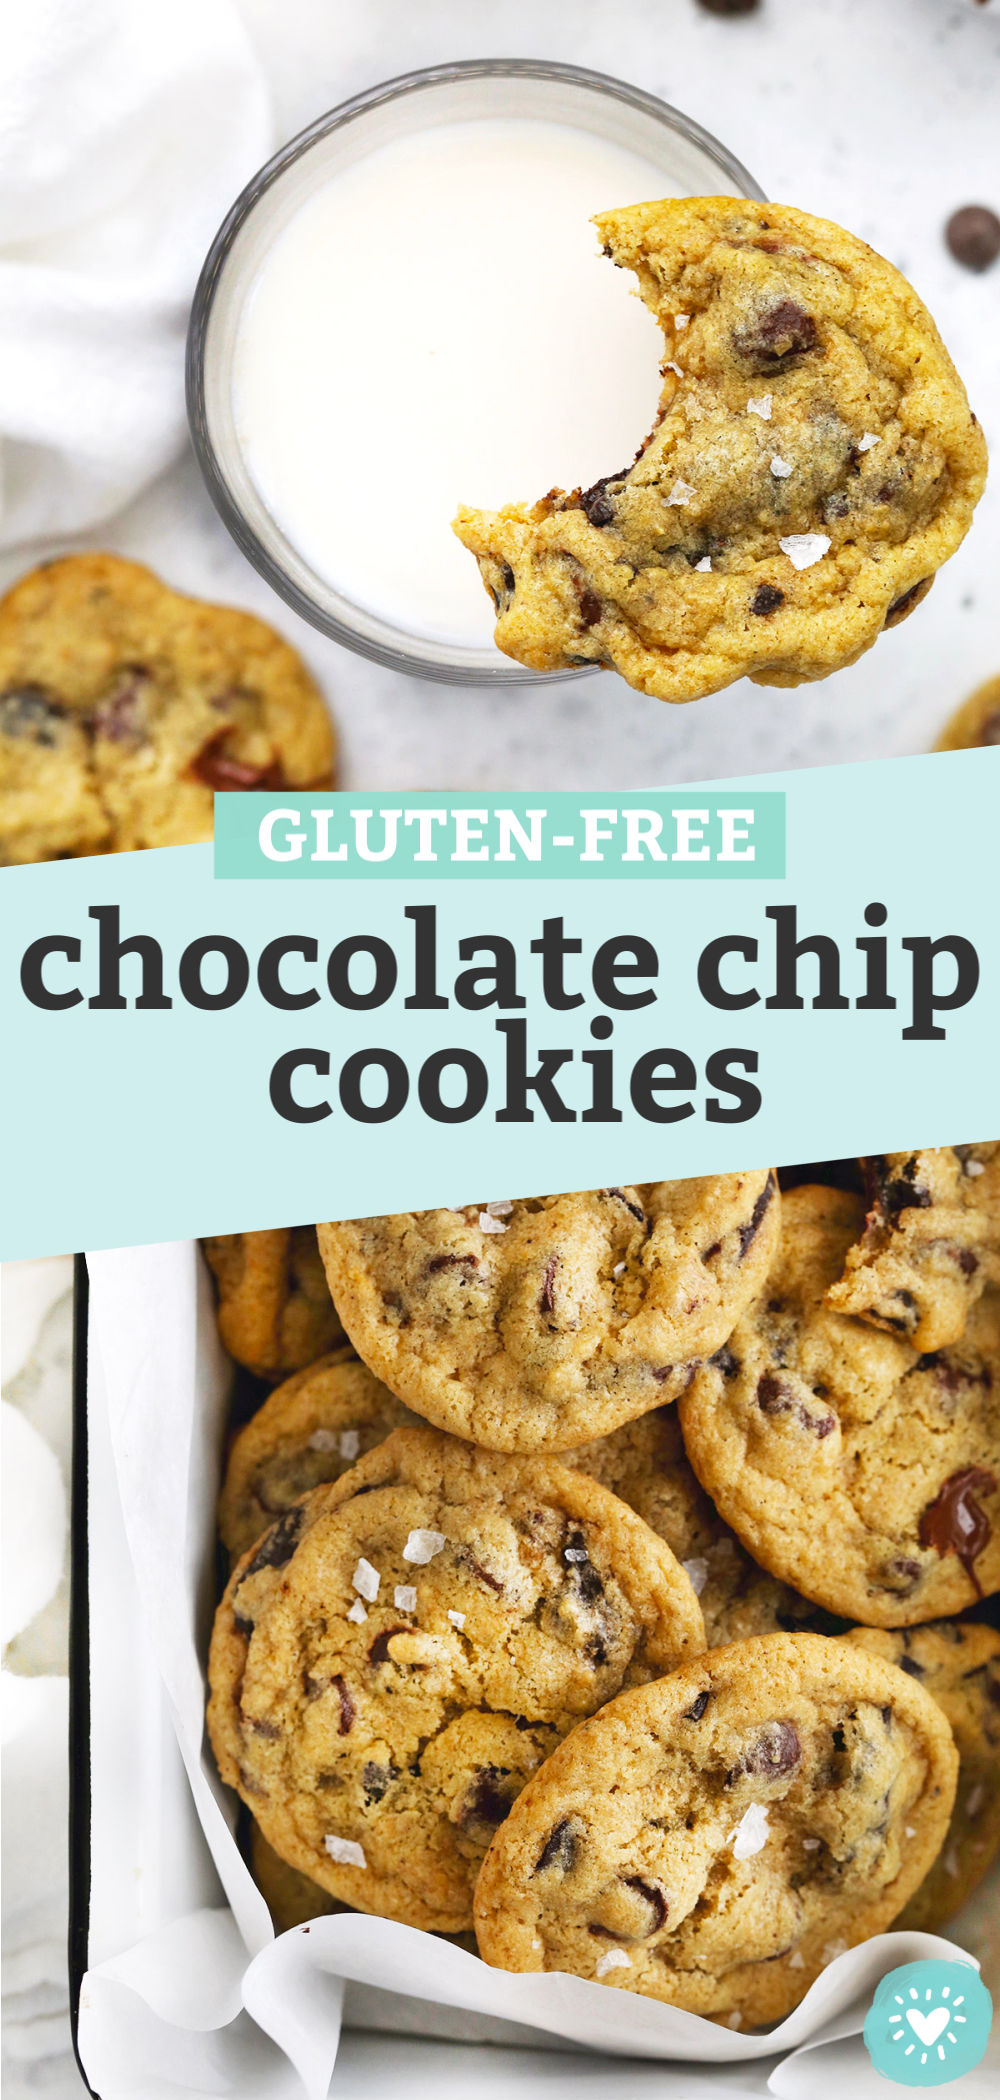 """Collage of images of gluten free chocolate chip cookies with text overlay that reads """"Gluten-Free Chocolate Chip Cookies"""""""